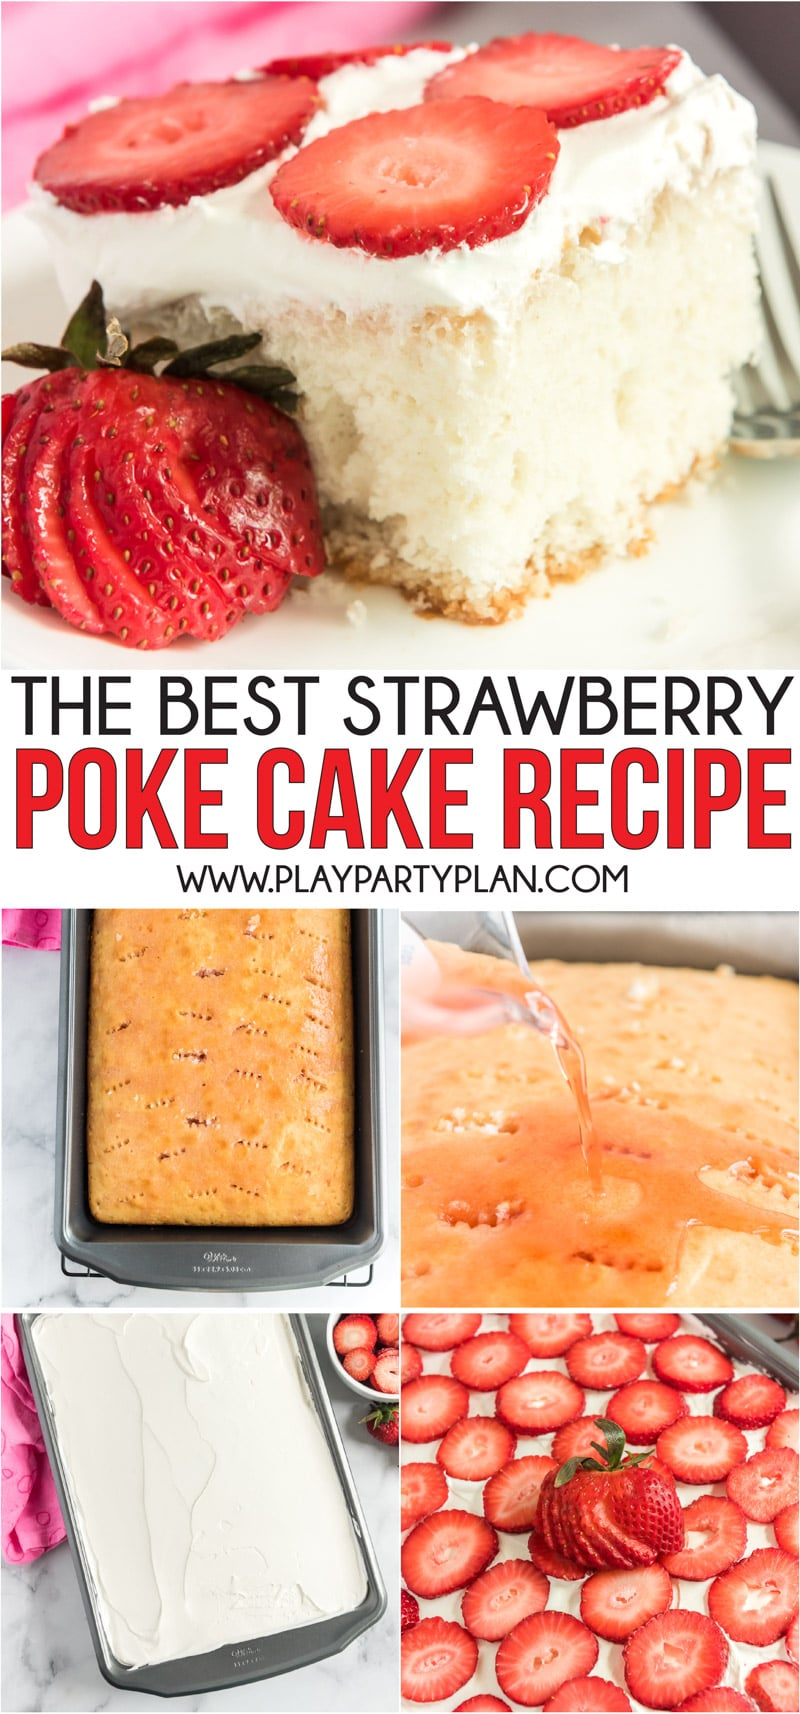 An easy and delicious strawberry poke cake recipe that makes the perfect summer dessert!